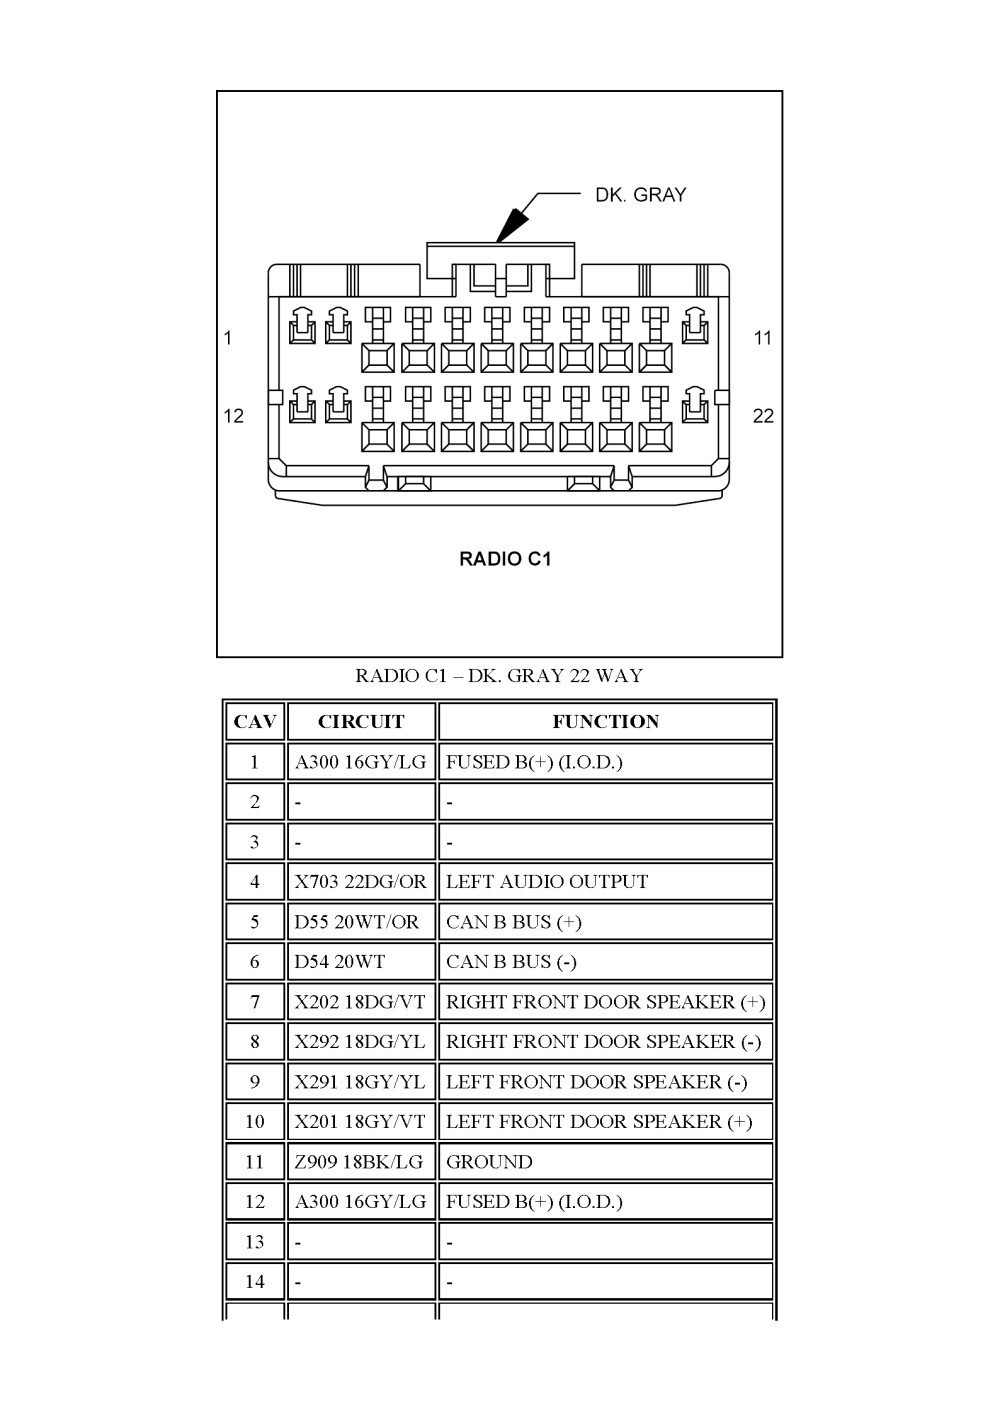 2005 Dodge Stratus Radio Wiring Diagram from mainetreasurechest.com